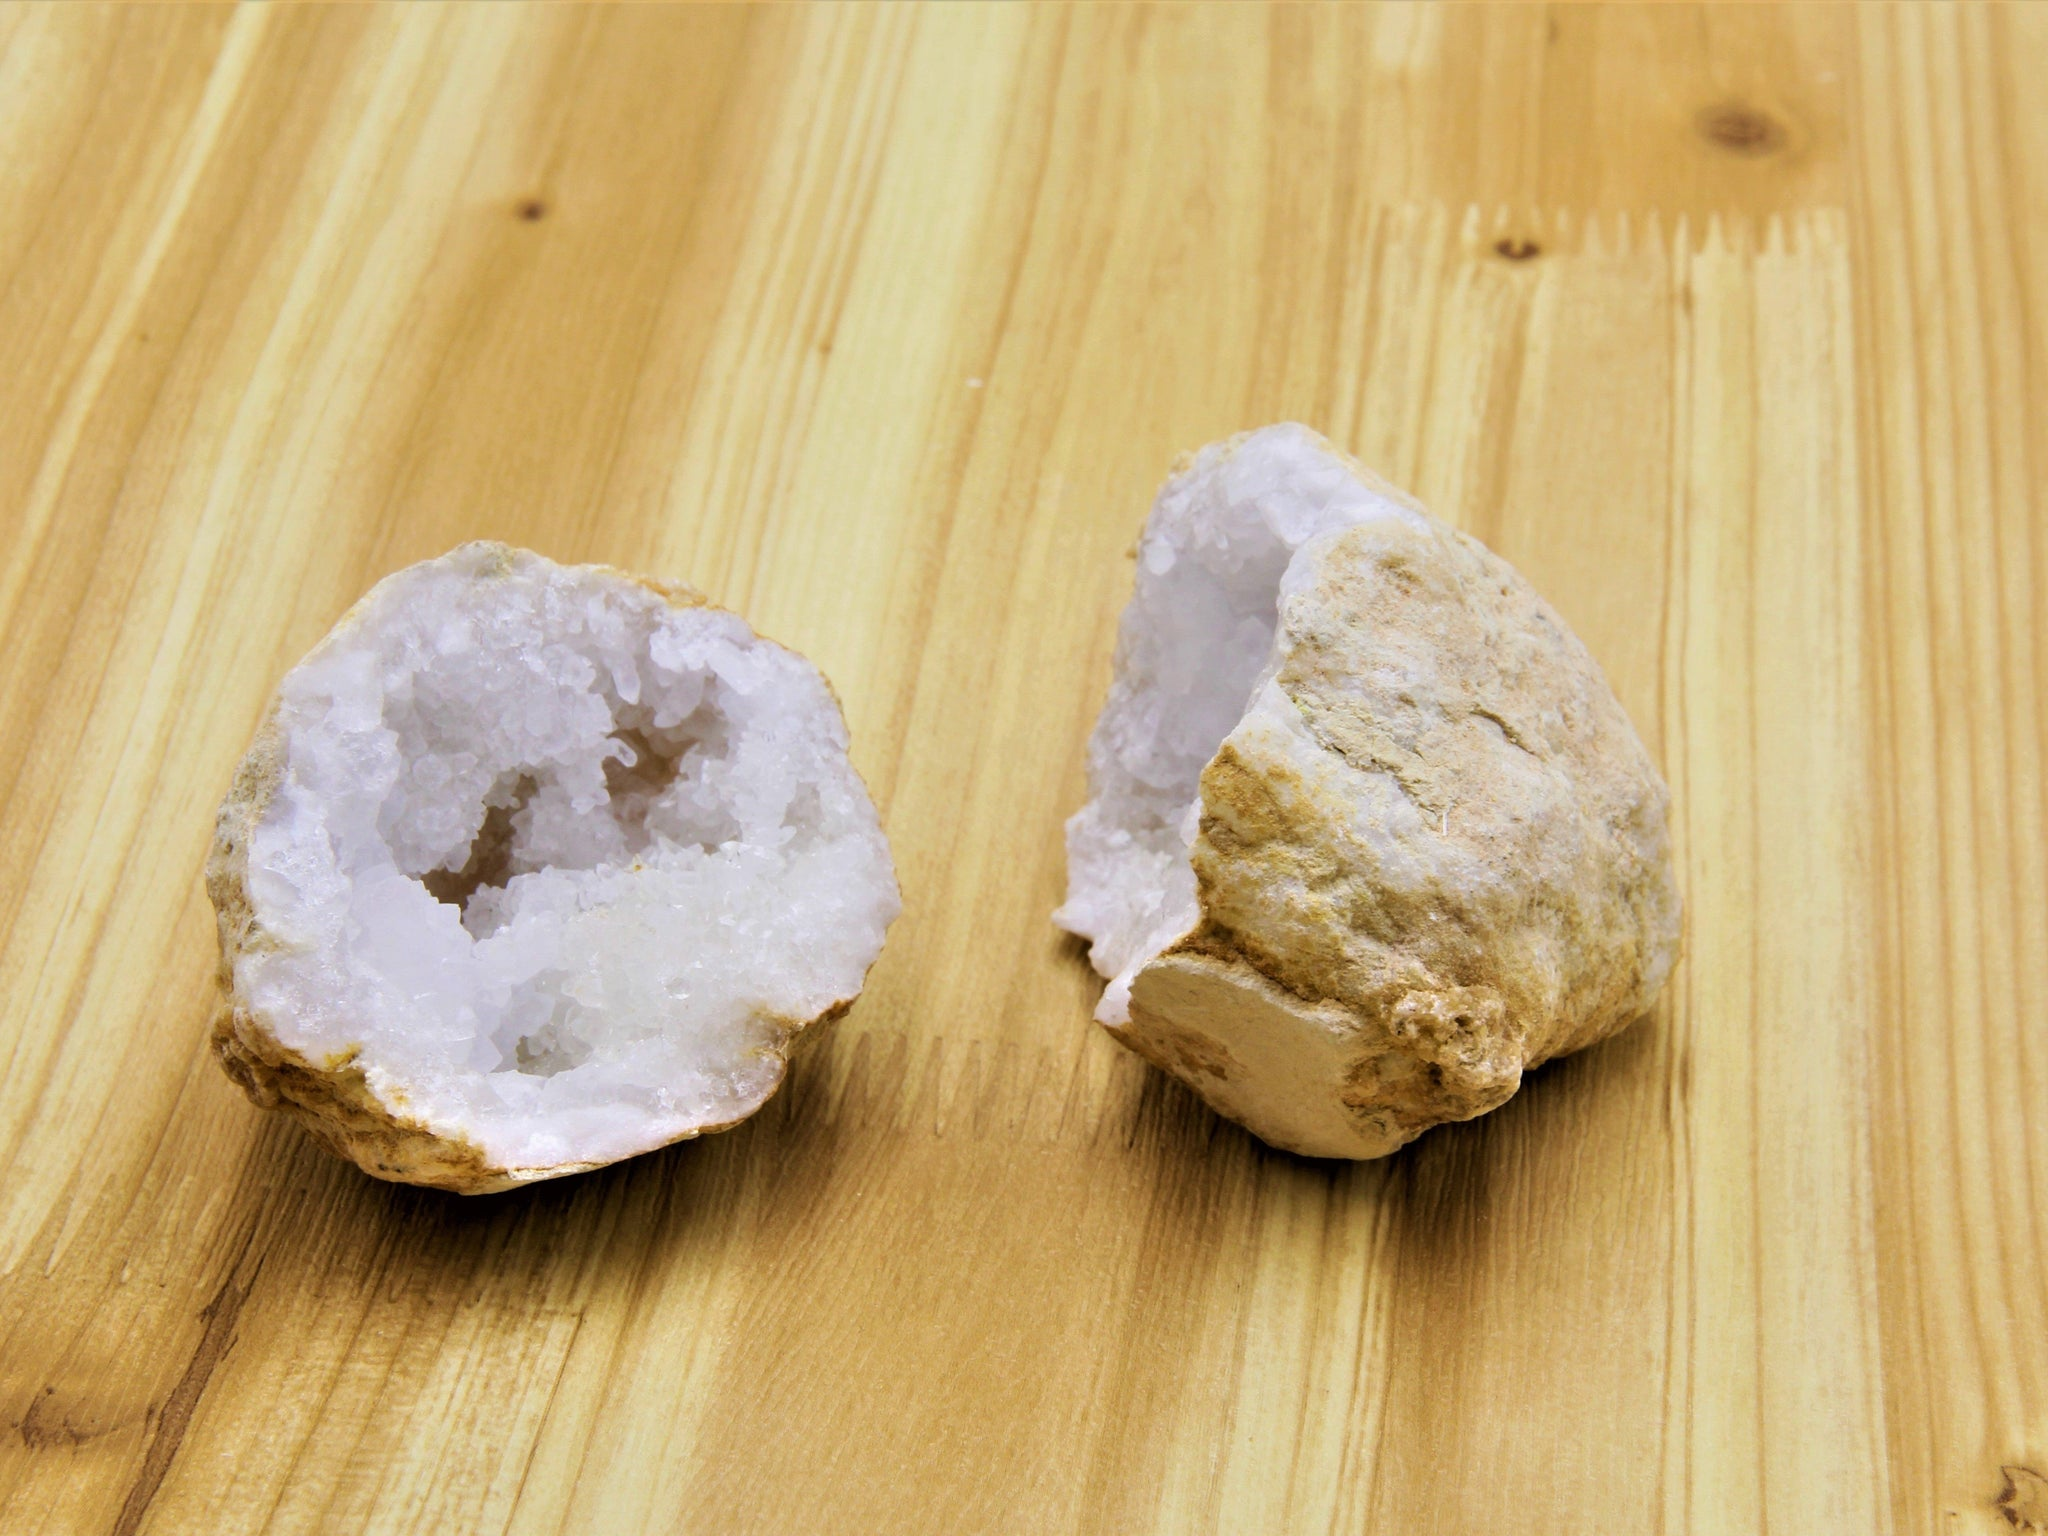 Quartz Geode Pair - Earth's Treasures